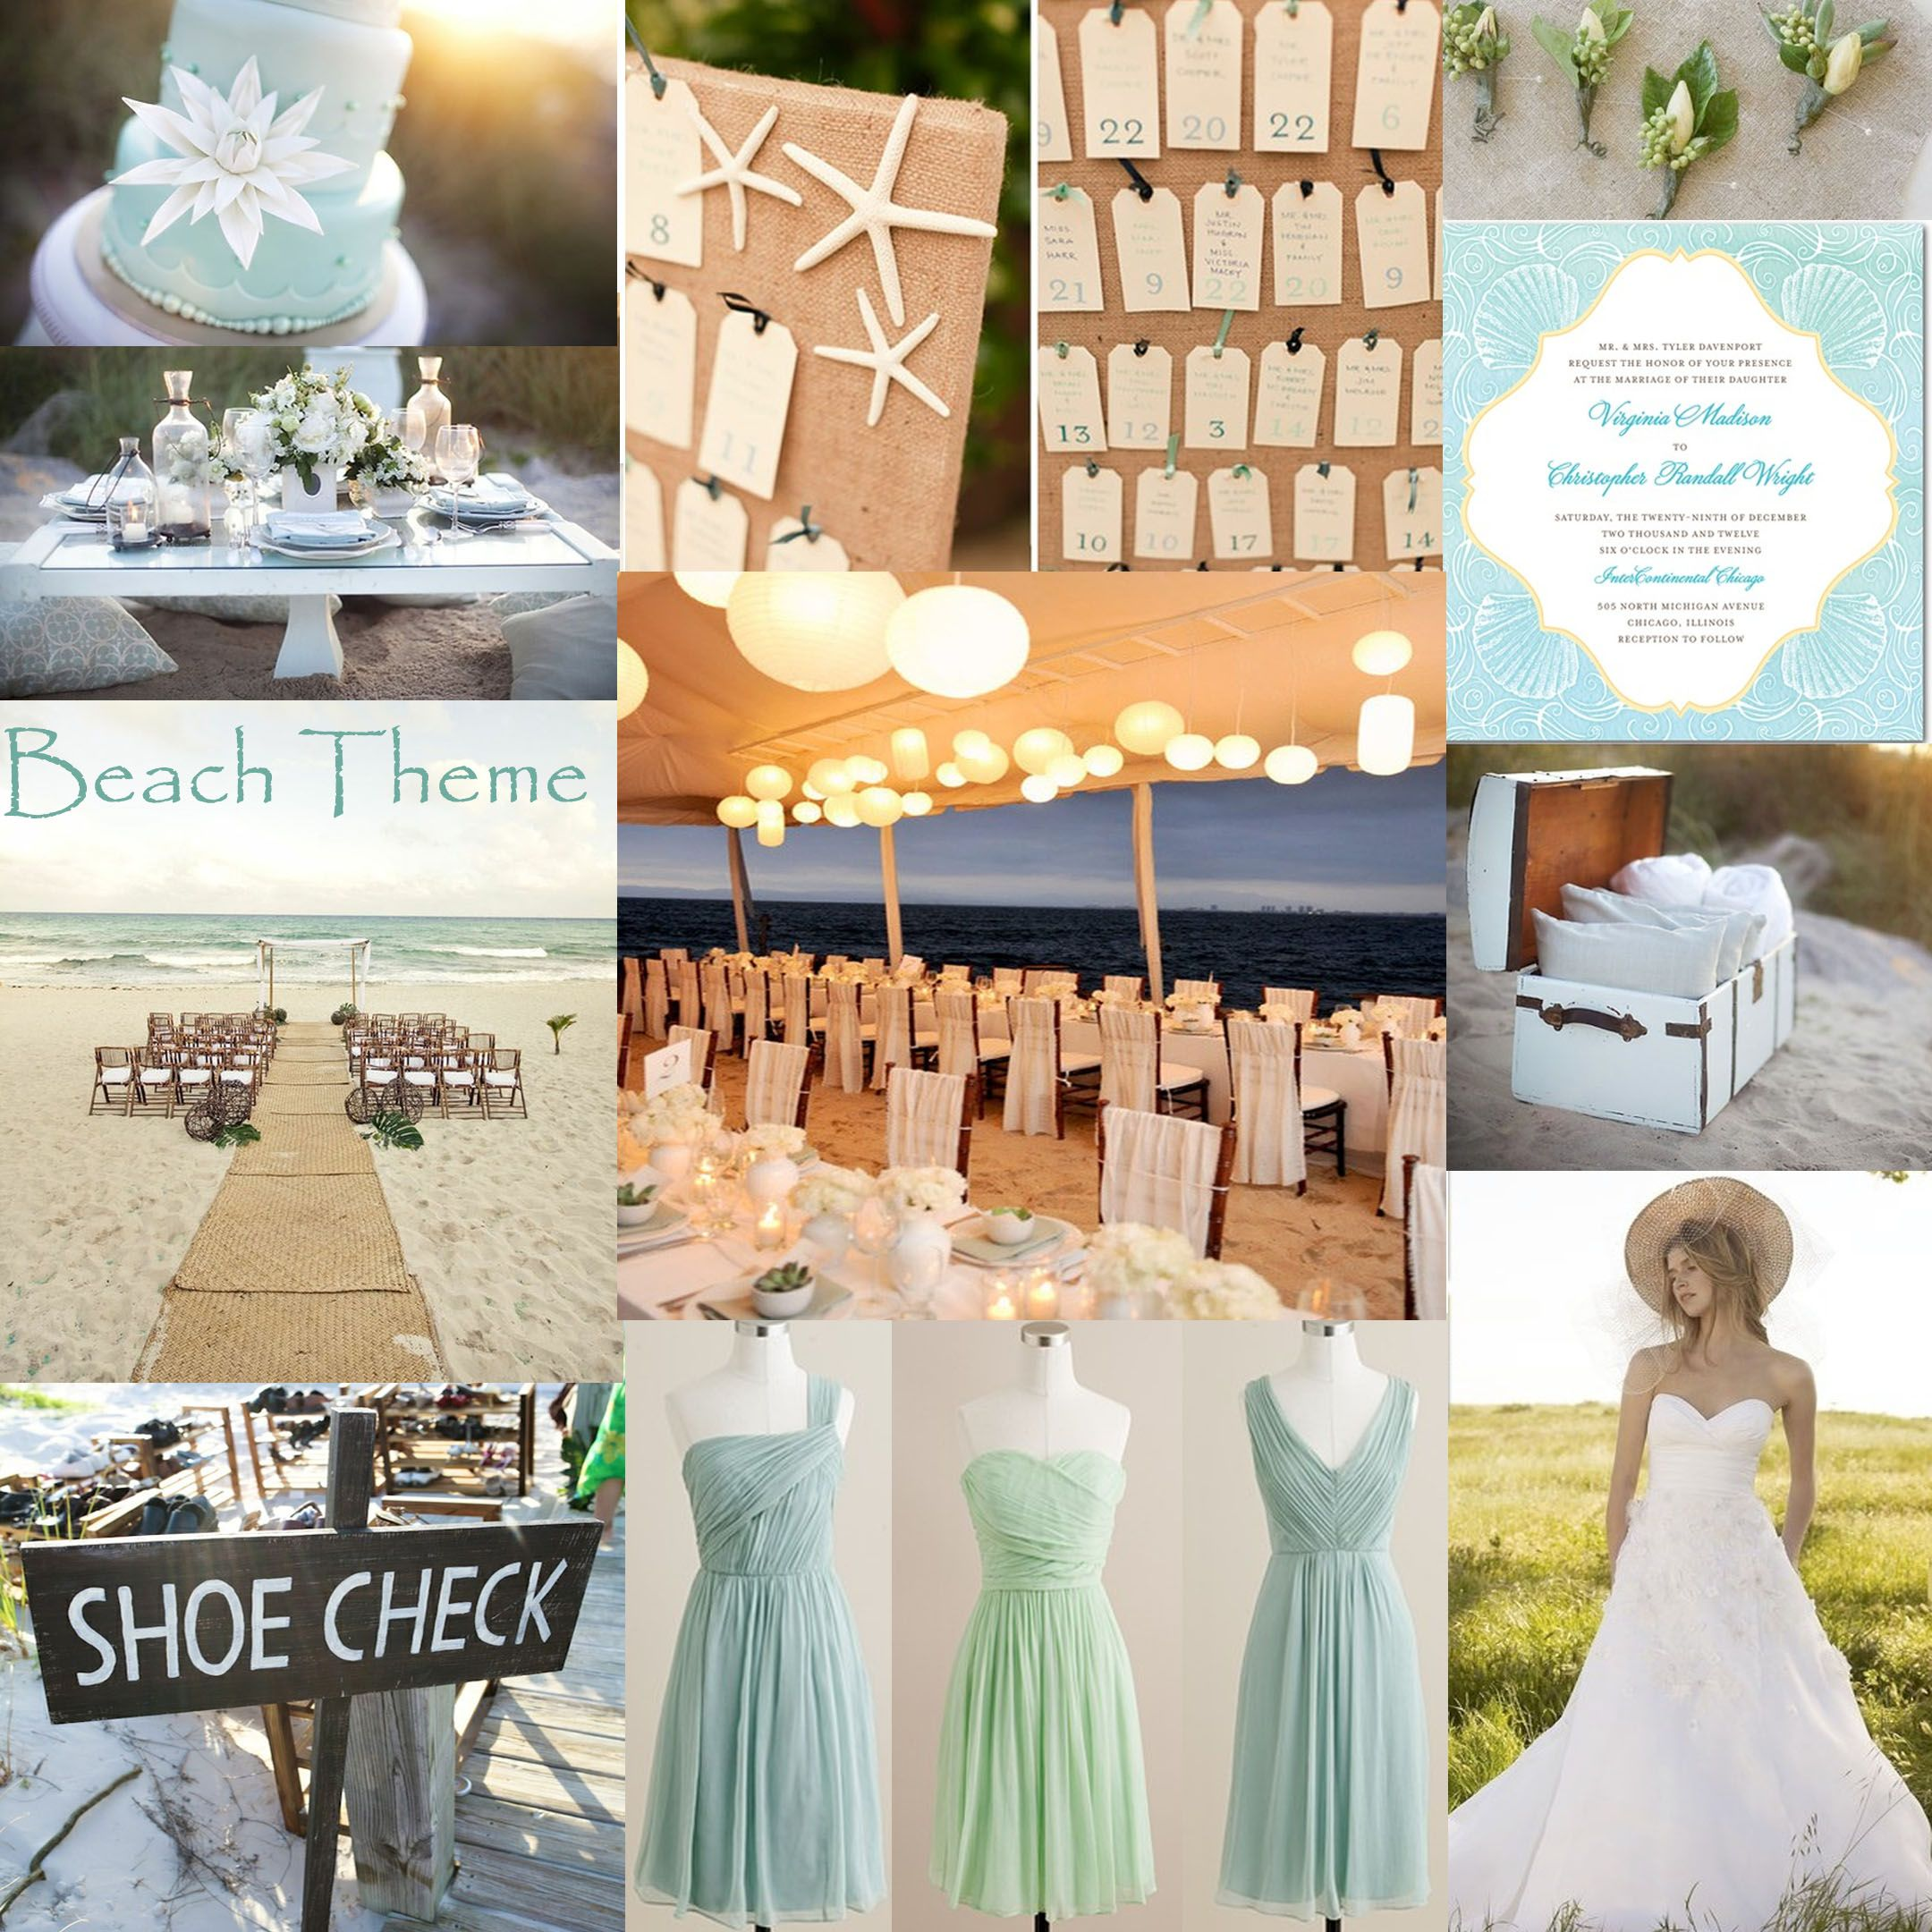 Beach Wedding Reception Ideas: Beach Theme Wedding